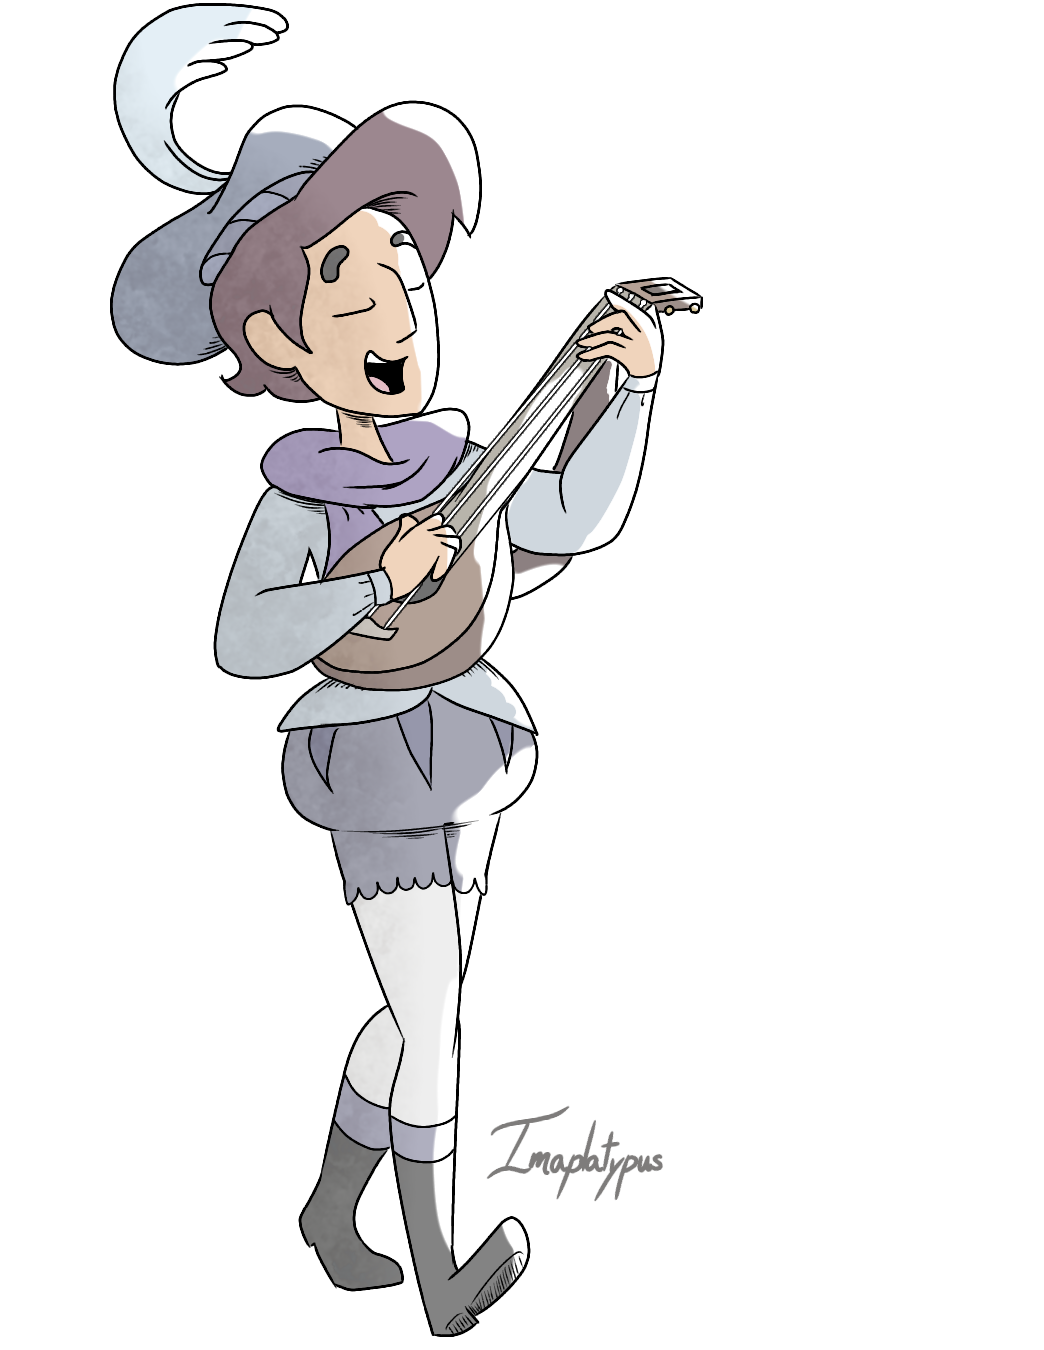 Jamie dressed as Ruberiot the songstrel Because Ruberiot's outfit reminded me of the outfit Jamie wore in Love Letters(I do believe that steven was imagining him in it but whatever)lol